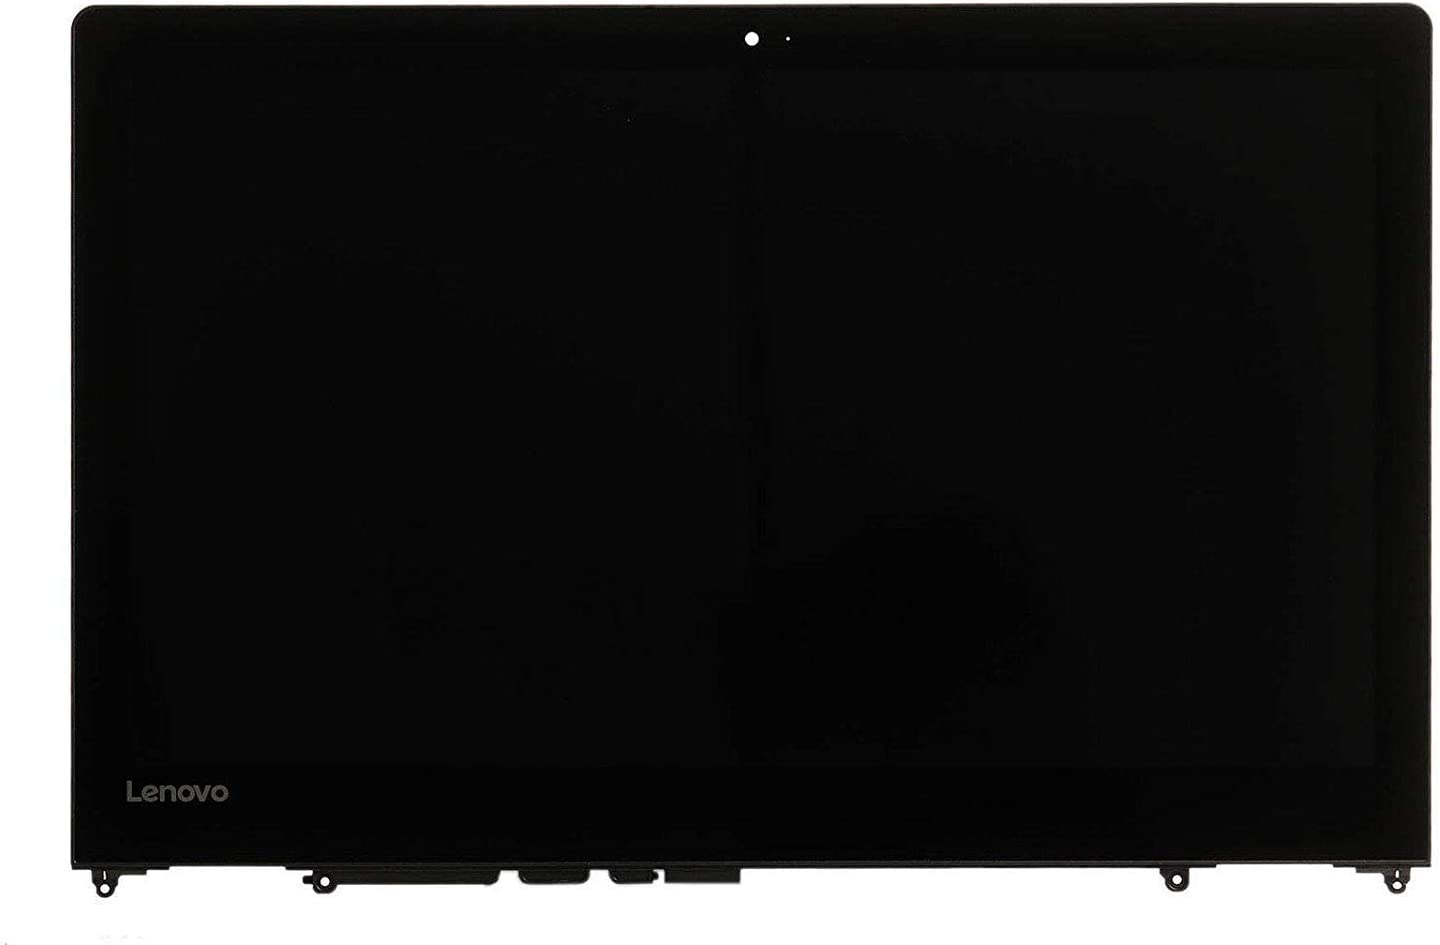 For Lenovo 15.6'' FHD IPS LCD Display Touch Digitizer Assembly IdeaPad Flex 4-1580 1570